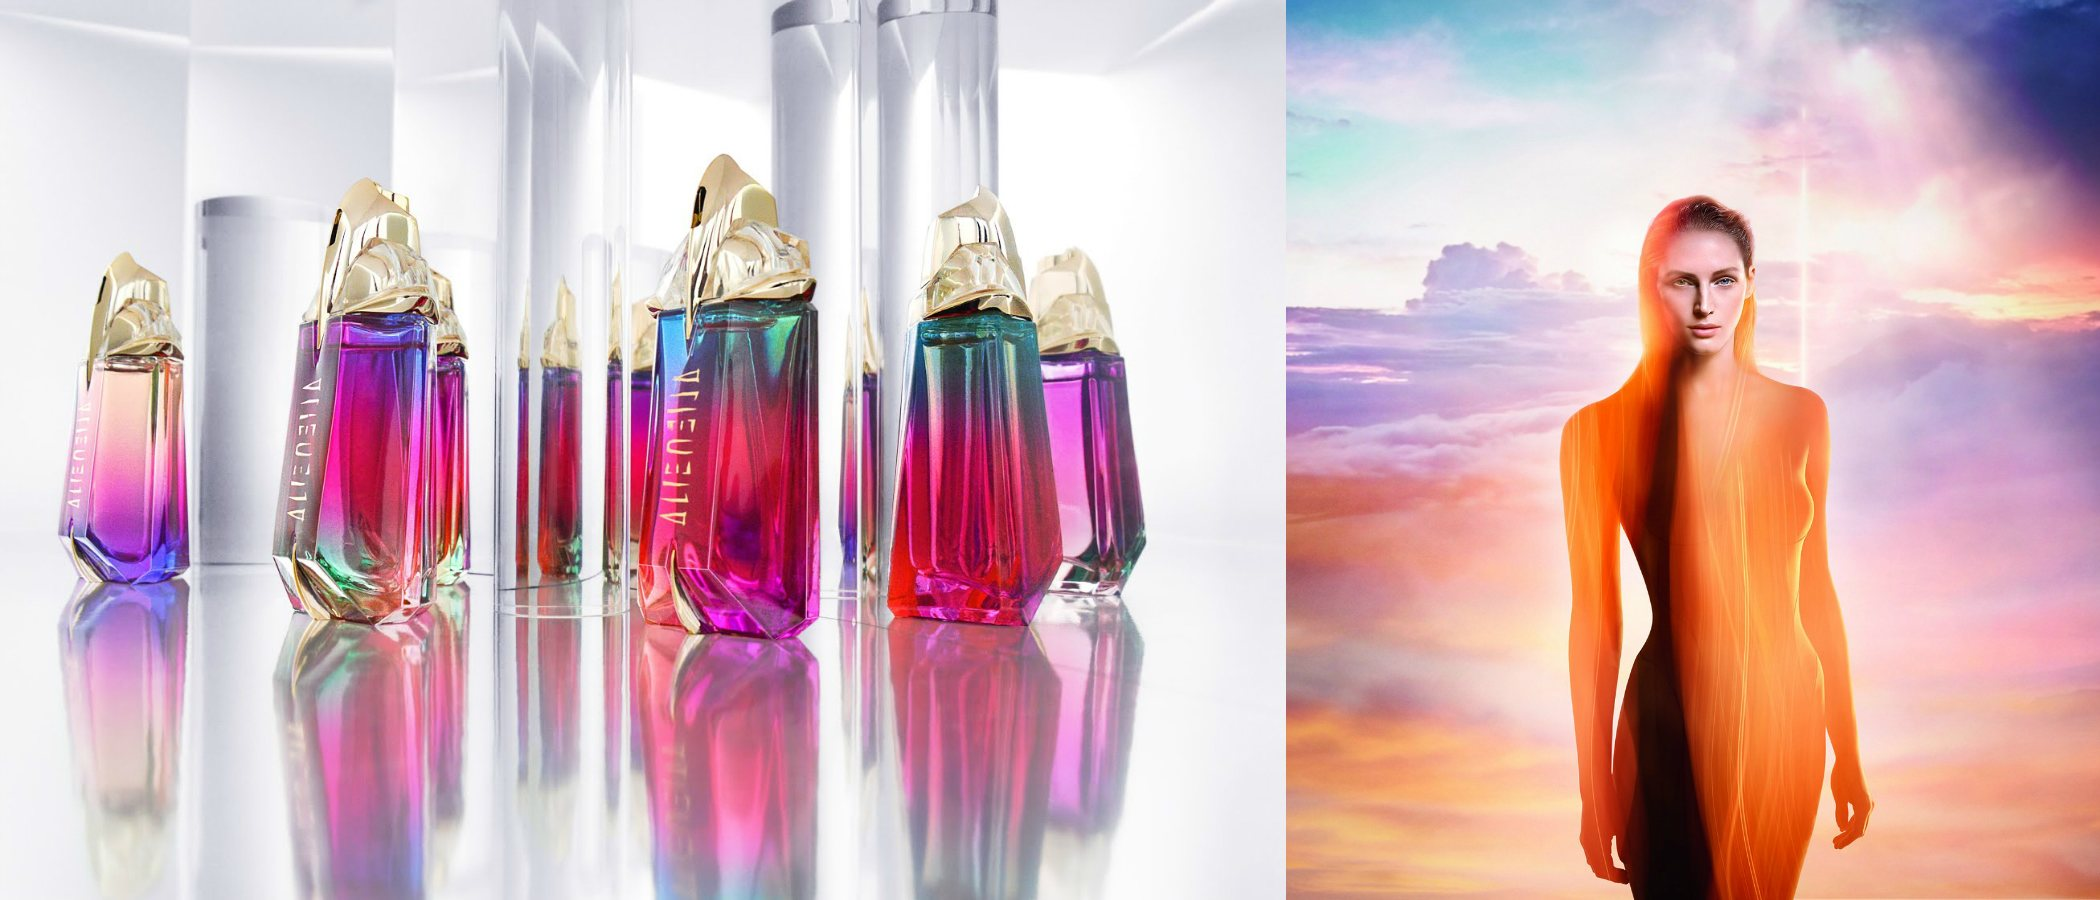 'We Are All Alien Collector Edition', la nueva fragancia para mujer de Thierry Mugler